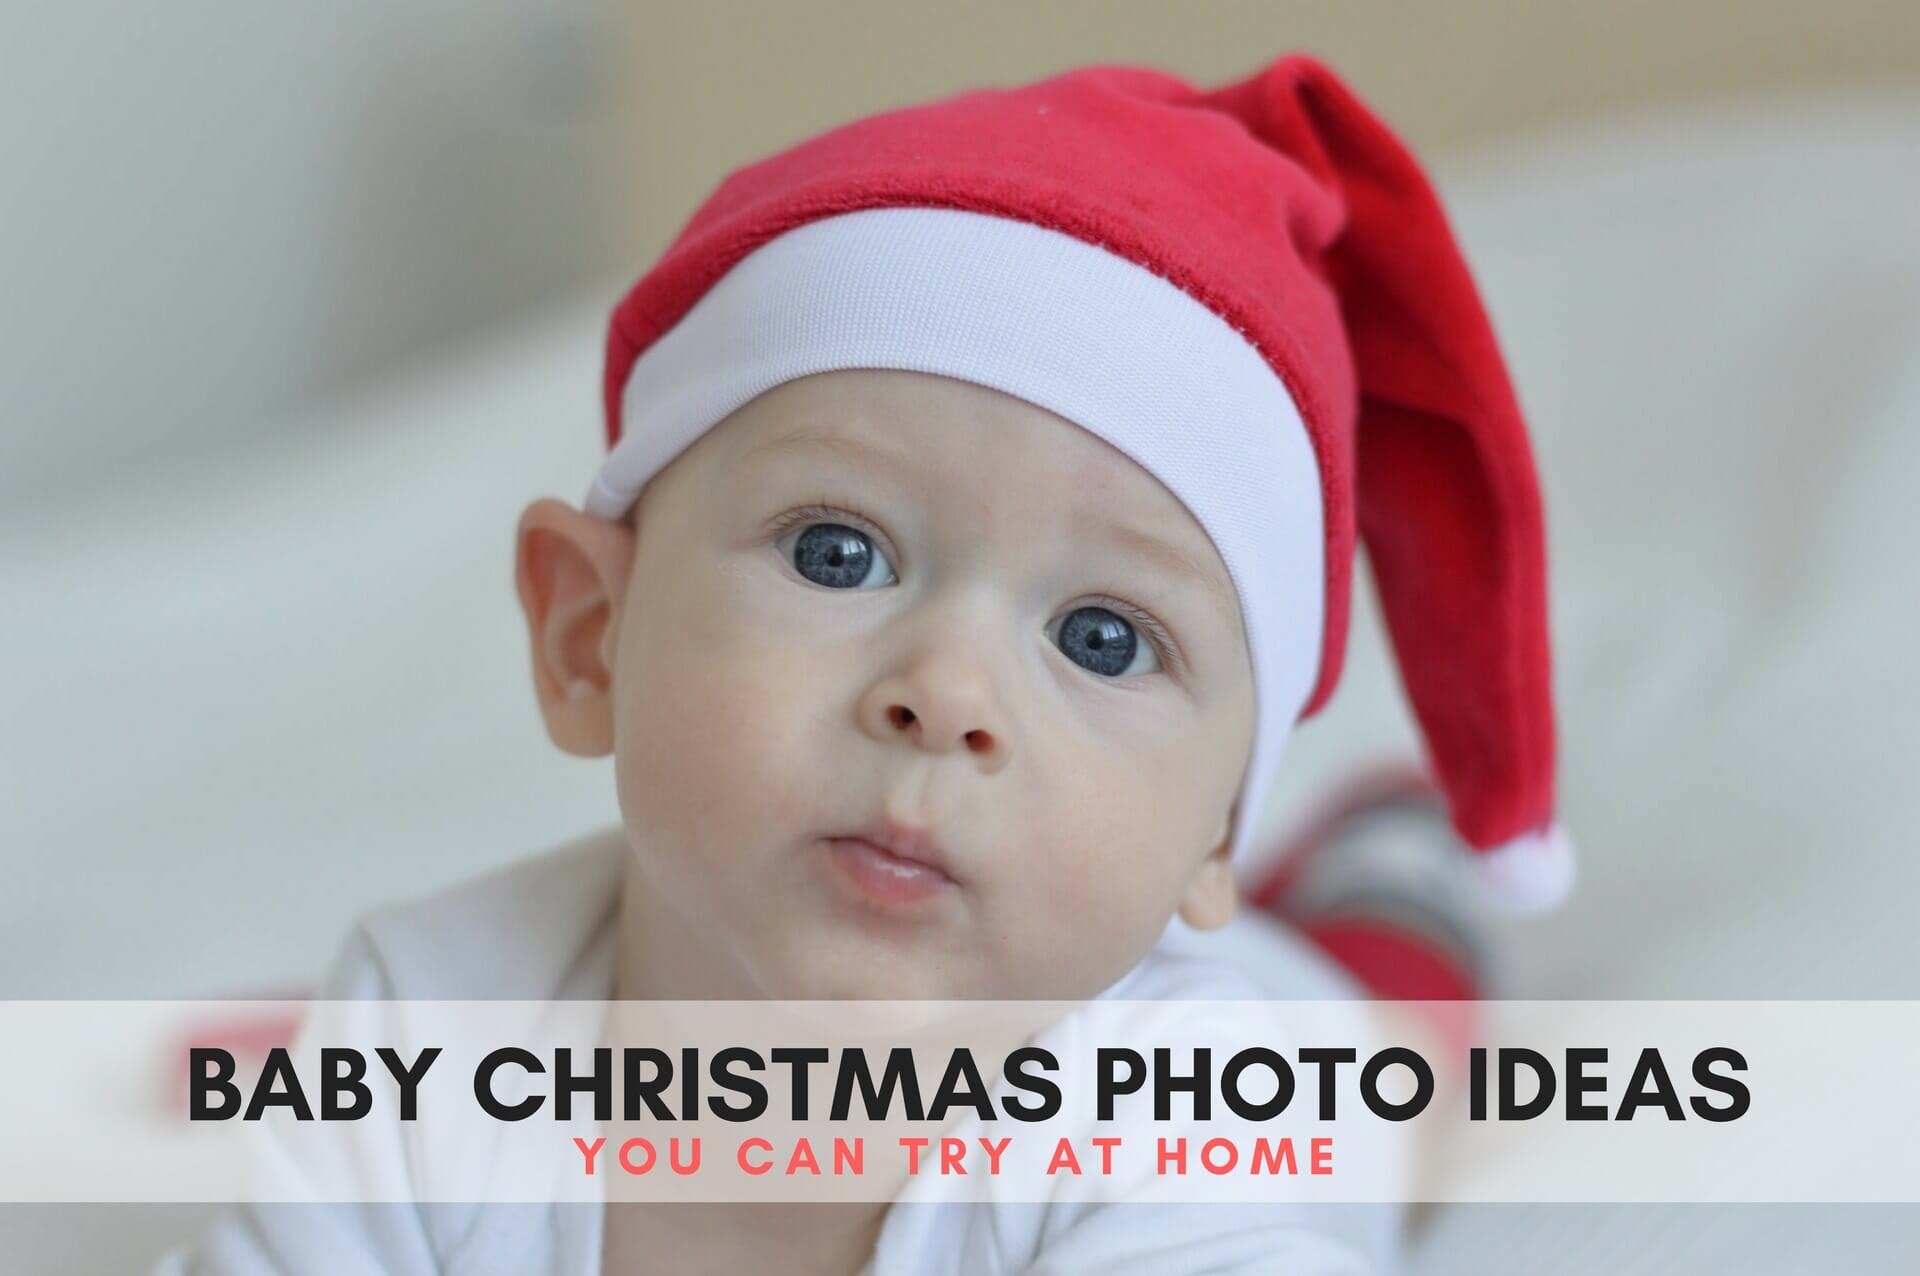 Baby christmas photo ideas you can try at home babycare mag for Cute baby christmas photo ideas